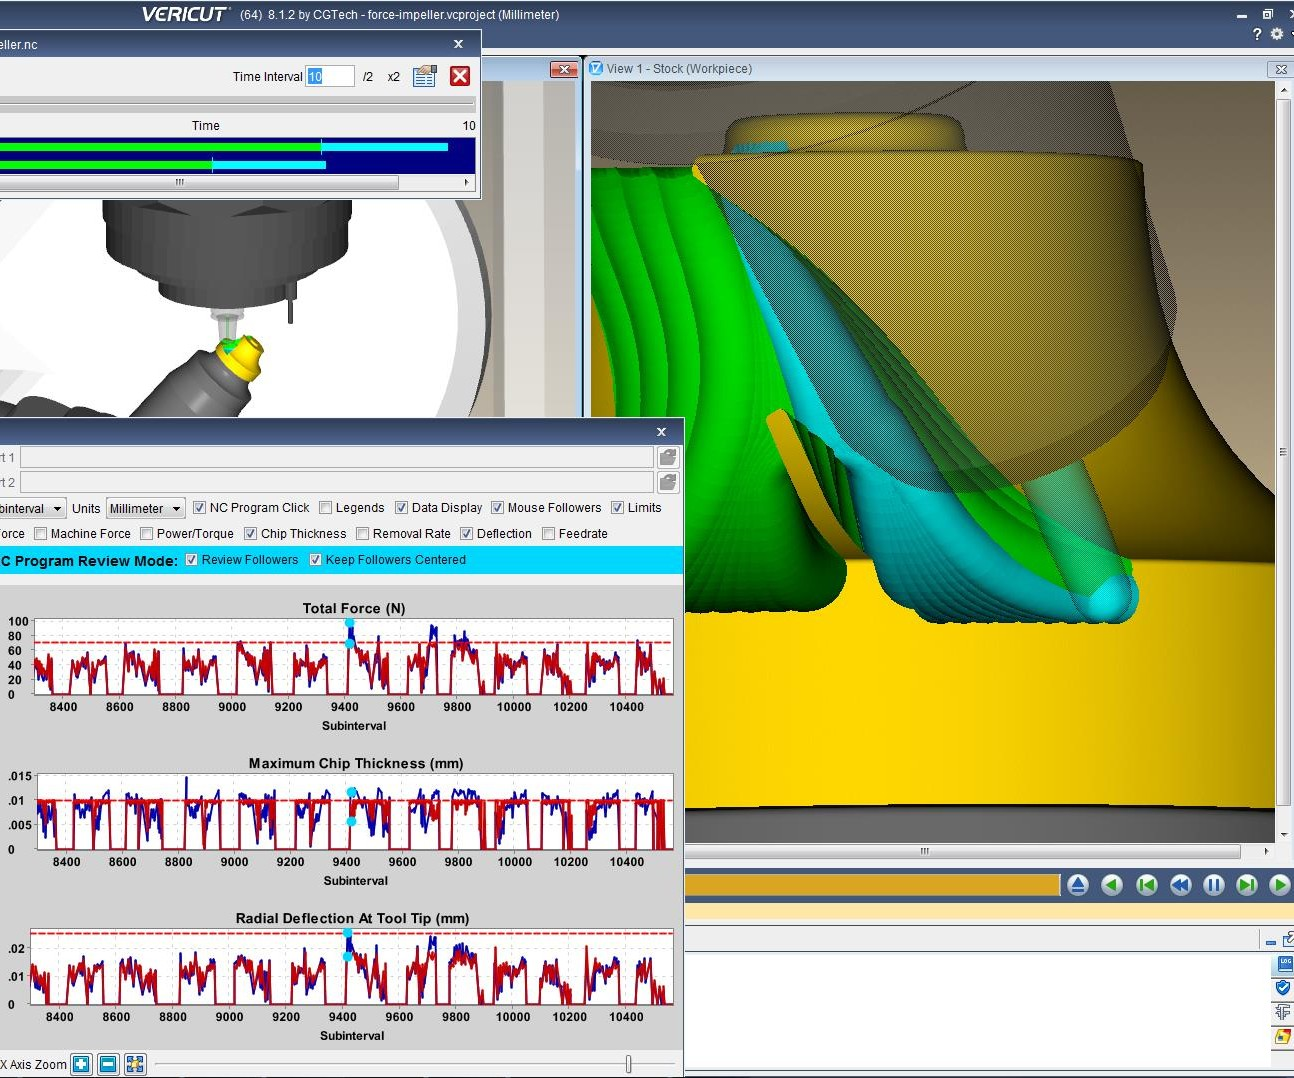 CGTech 8.1.2 of its Vericut CNC